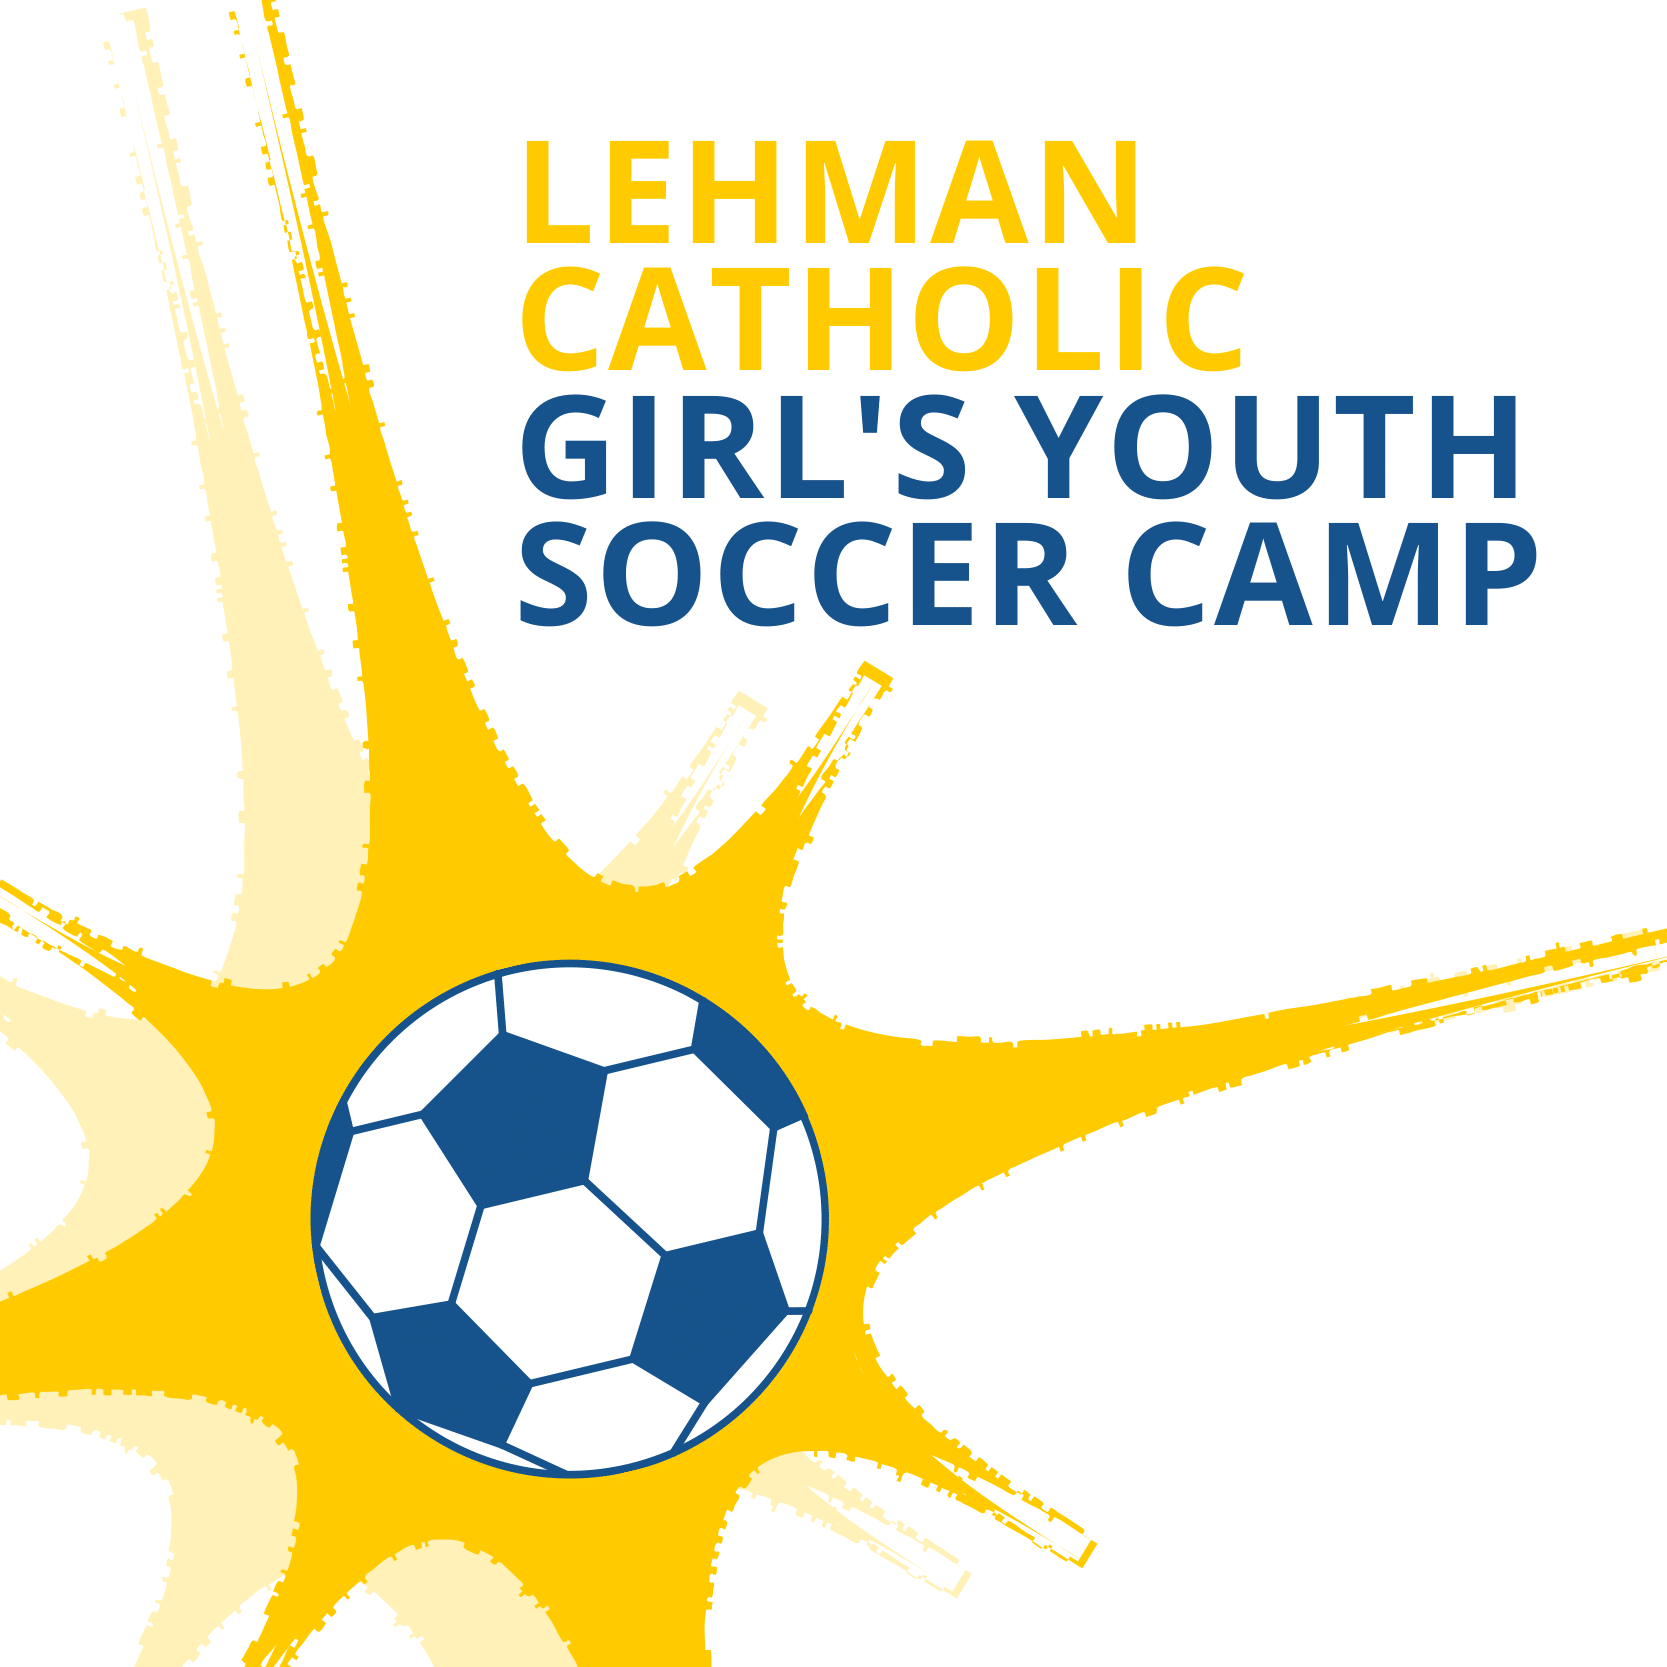 Lehman Girls Youth Soccer Camp is July 22 - 24